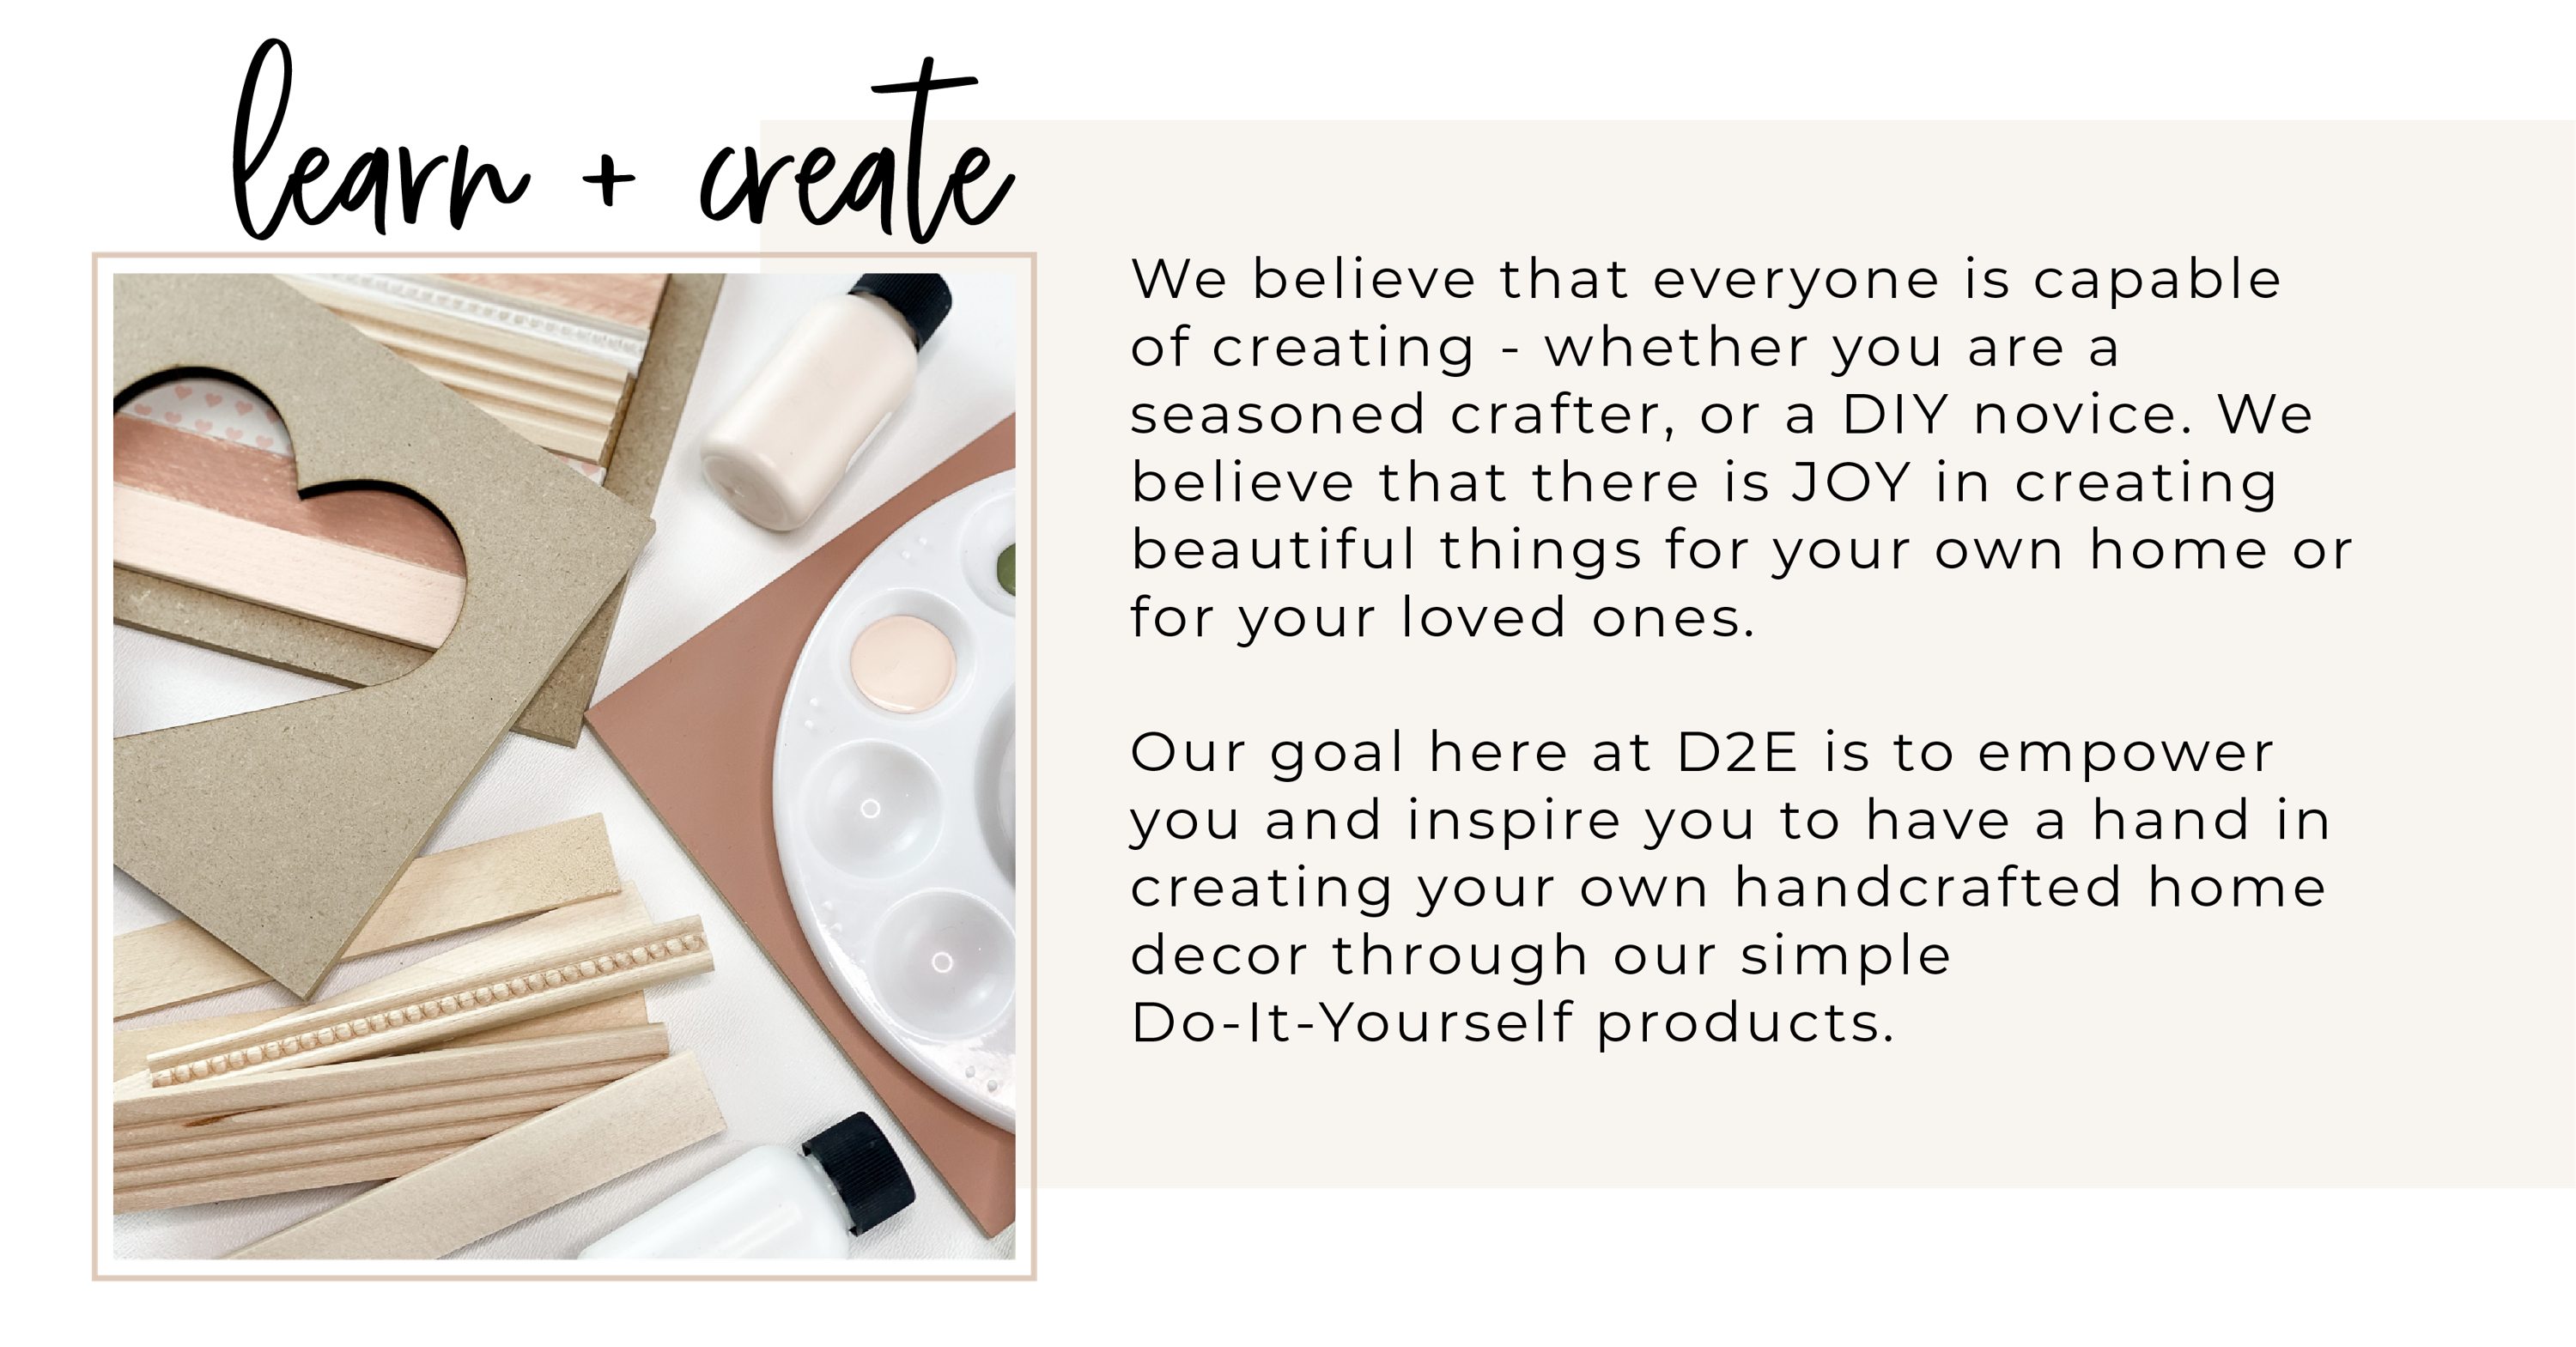 We believe that everyone is capable of creating - whether you are a seasoned crafter, or a DIY novice. We believe that there is JOY in creating beautiful things for your own home or for your loved ones.  Our goal here at D2E is to empower you and inspire you to have a hand in creating your own handcrafted home decor through our simple Do-It-Yourself products.